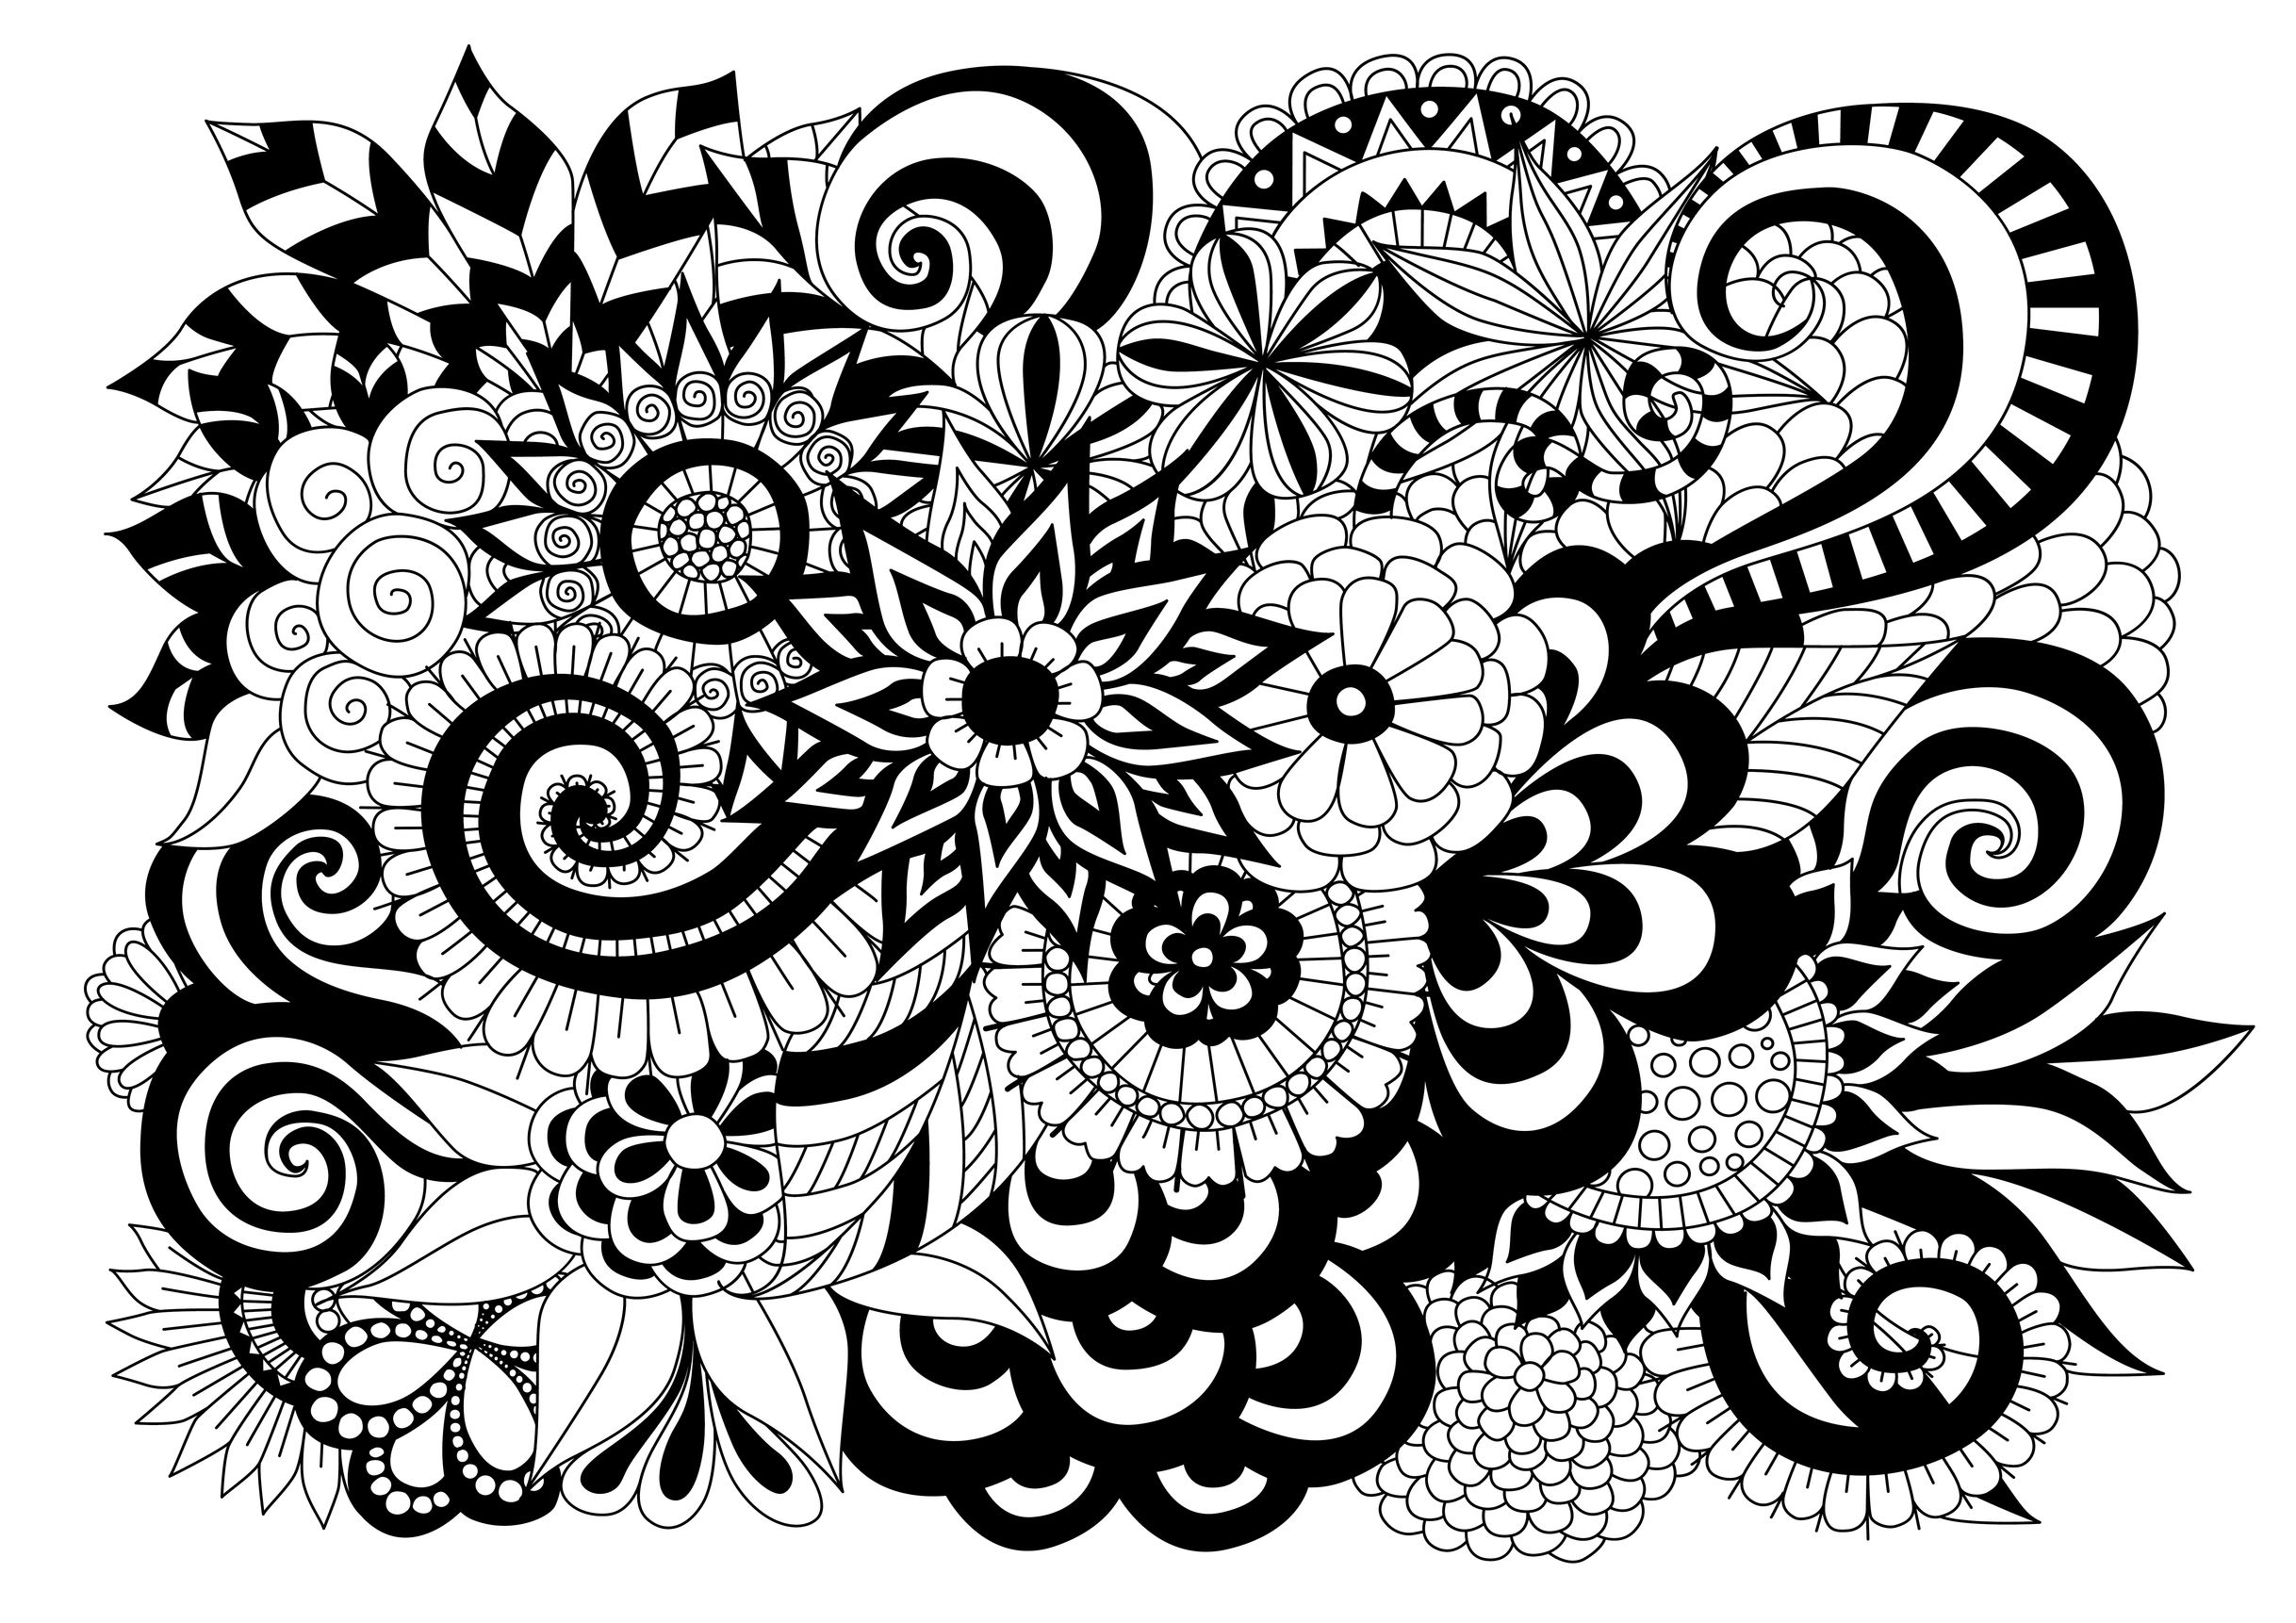 Free Complex Flower Coloring Pages, Download Free Clip Art, Free ... | 1722x2436